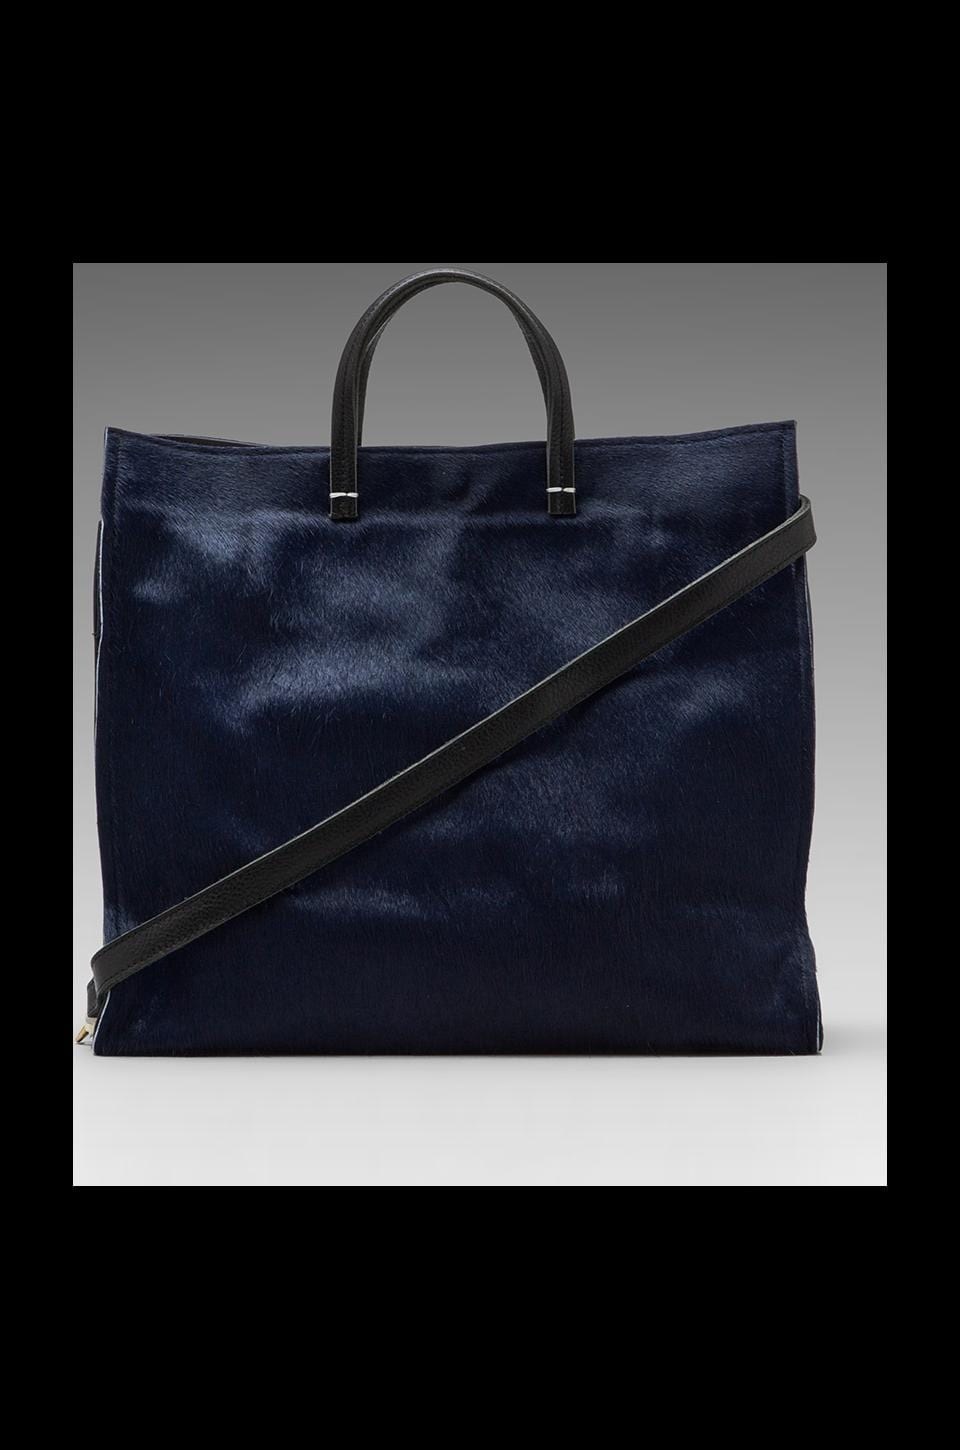 Clare V. Simple Tote in Navy